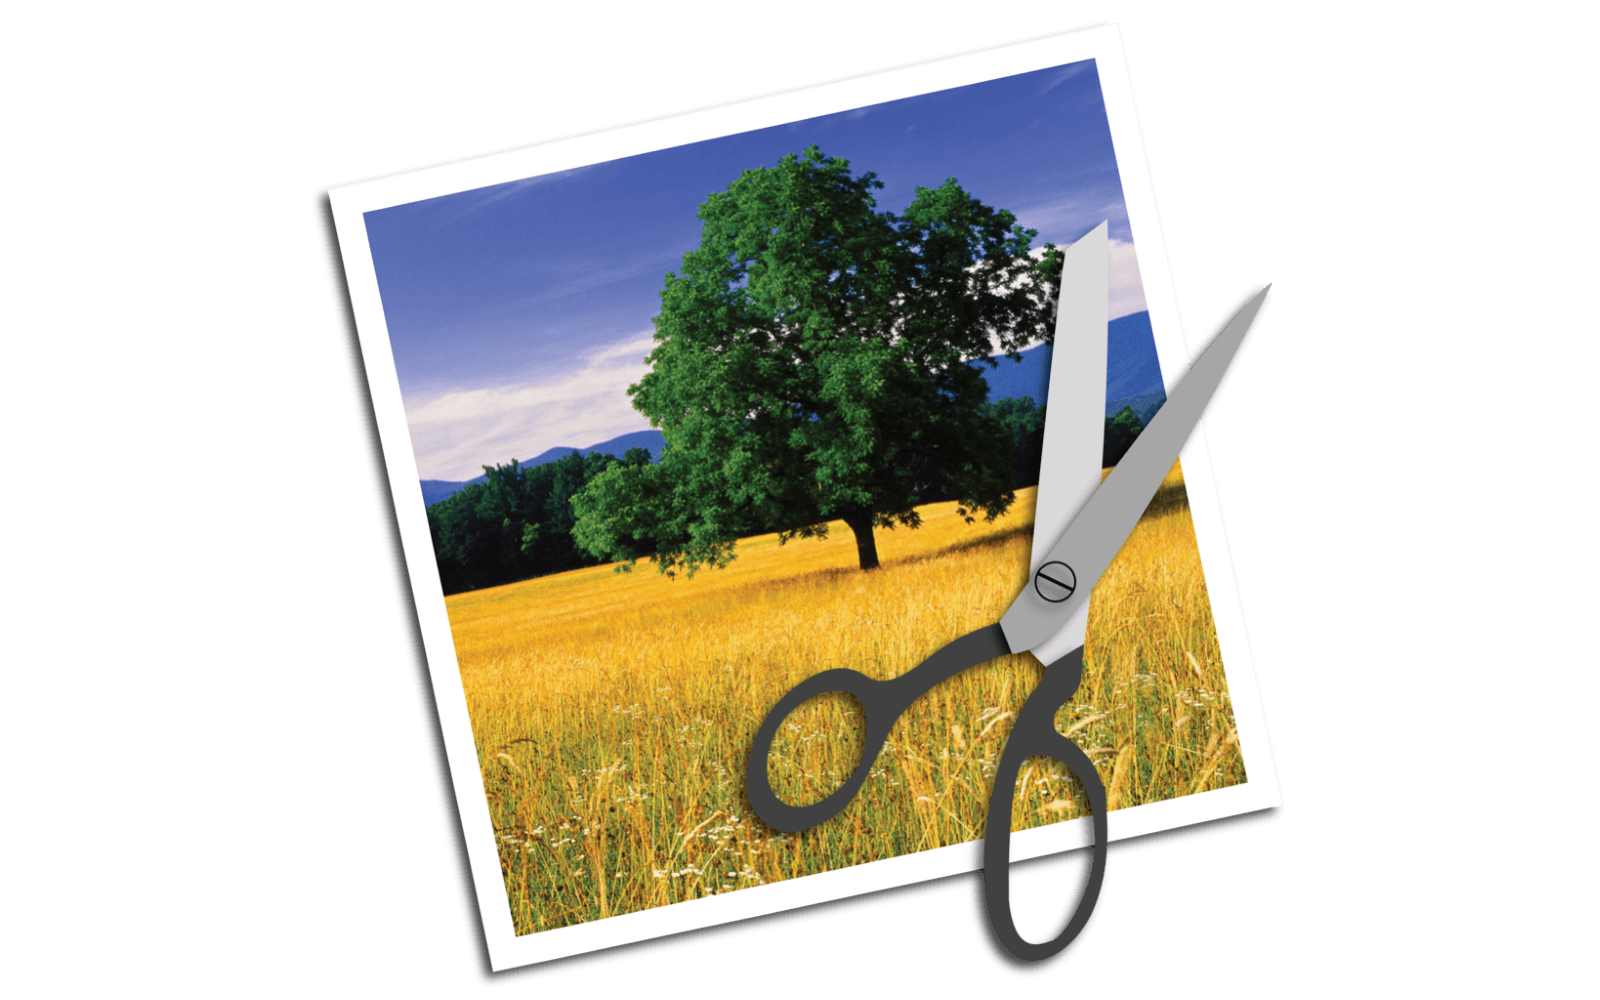 How to Crop an Image on Mac OS X